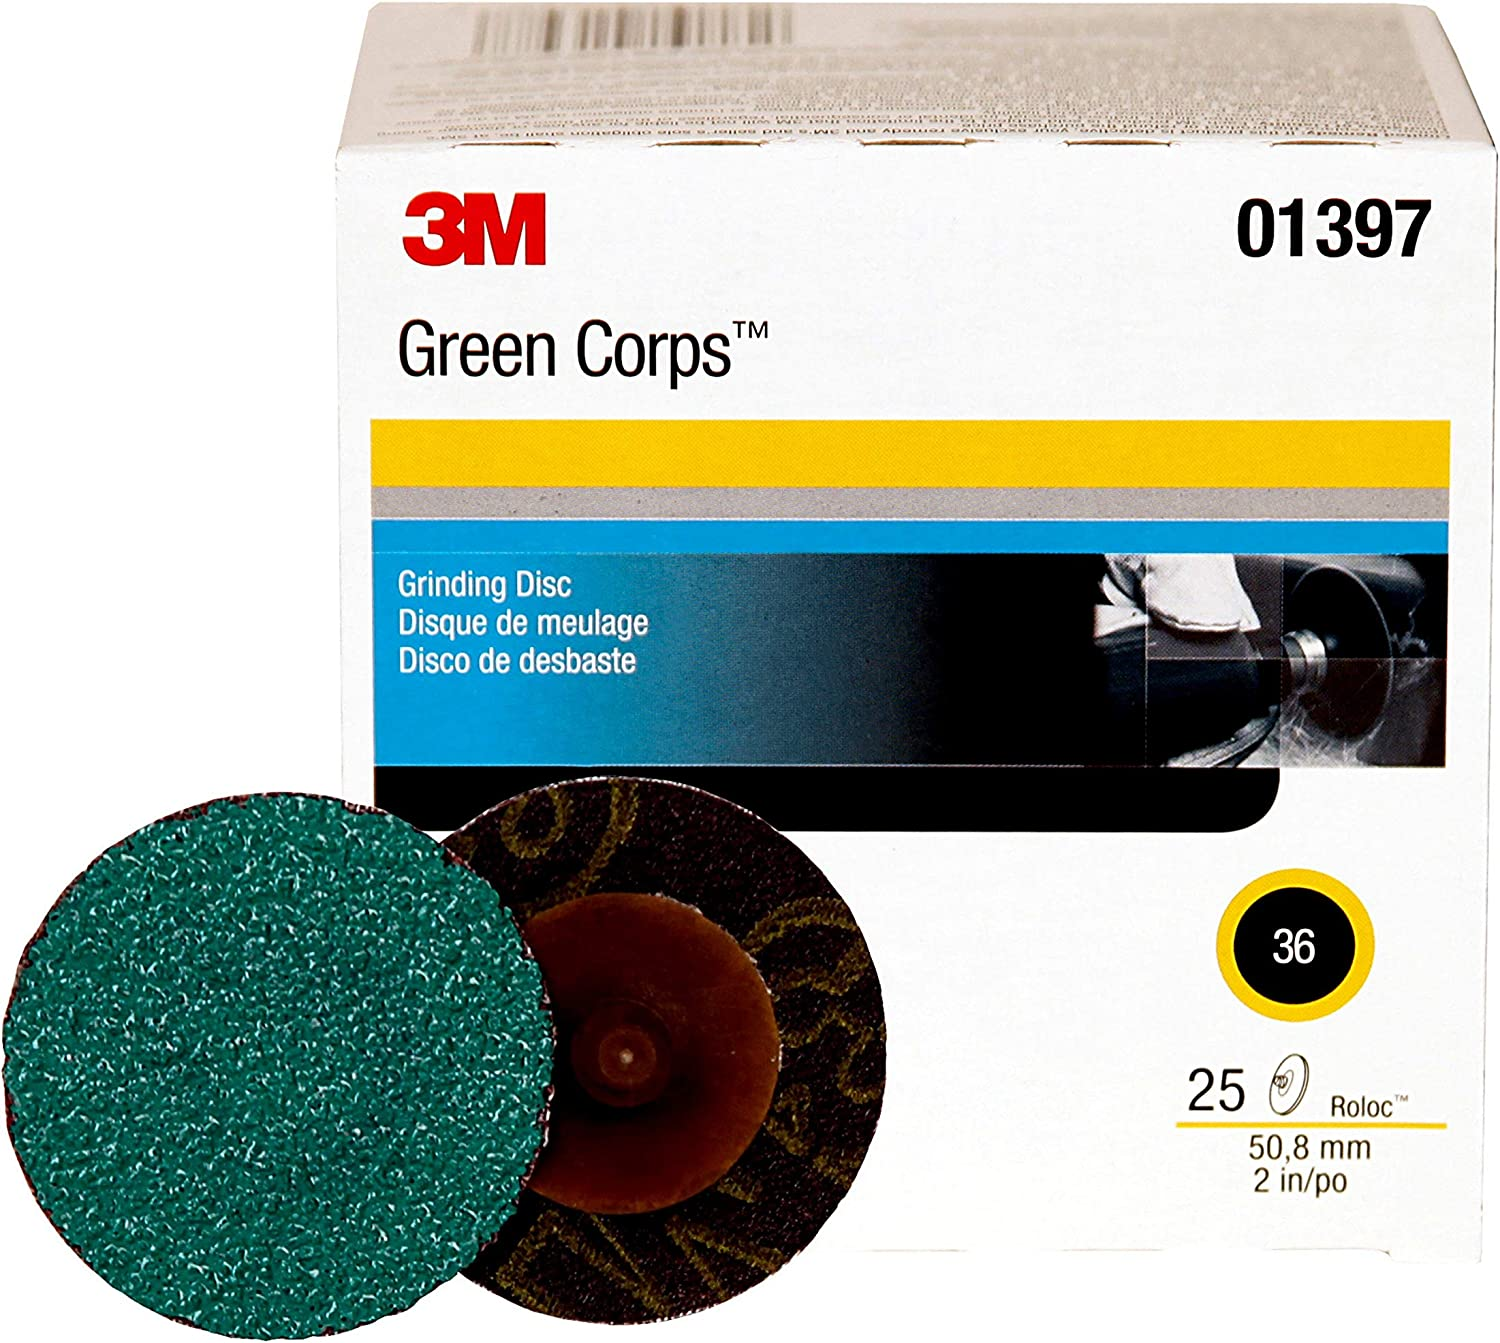 3M 01397 Green Corps Roloc Green Disc